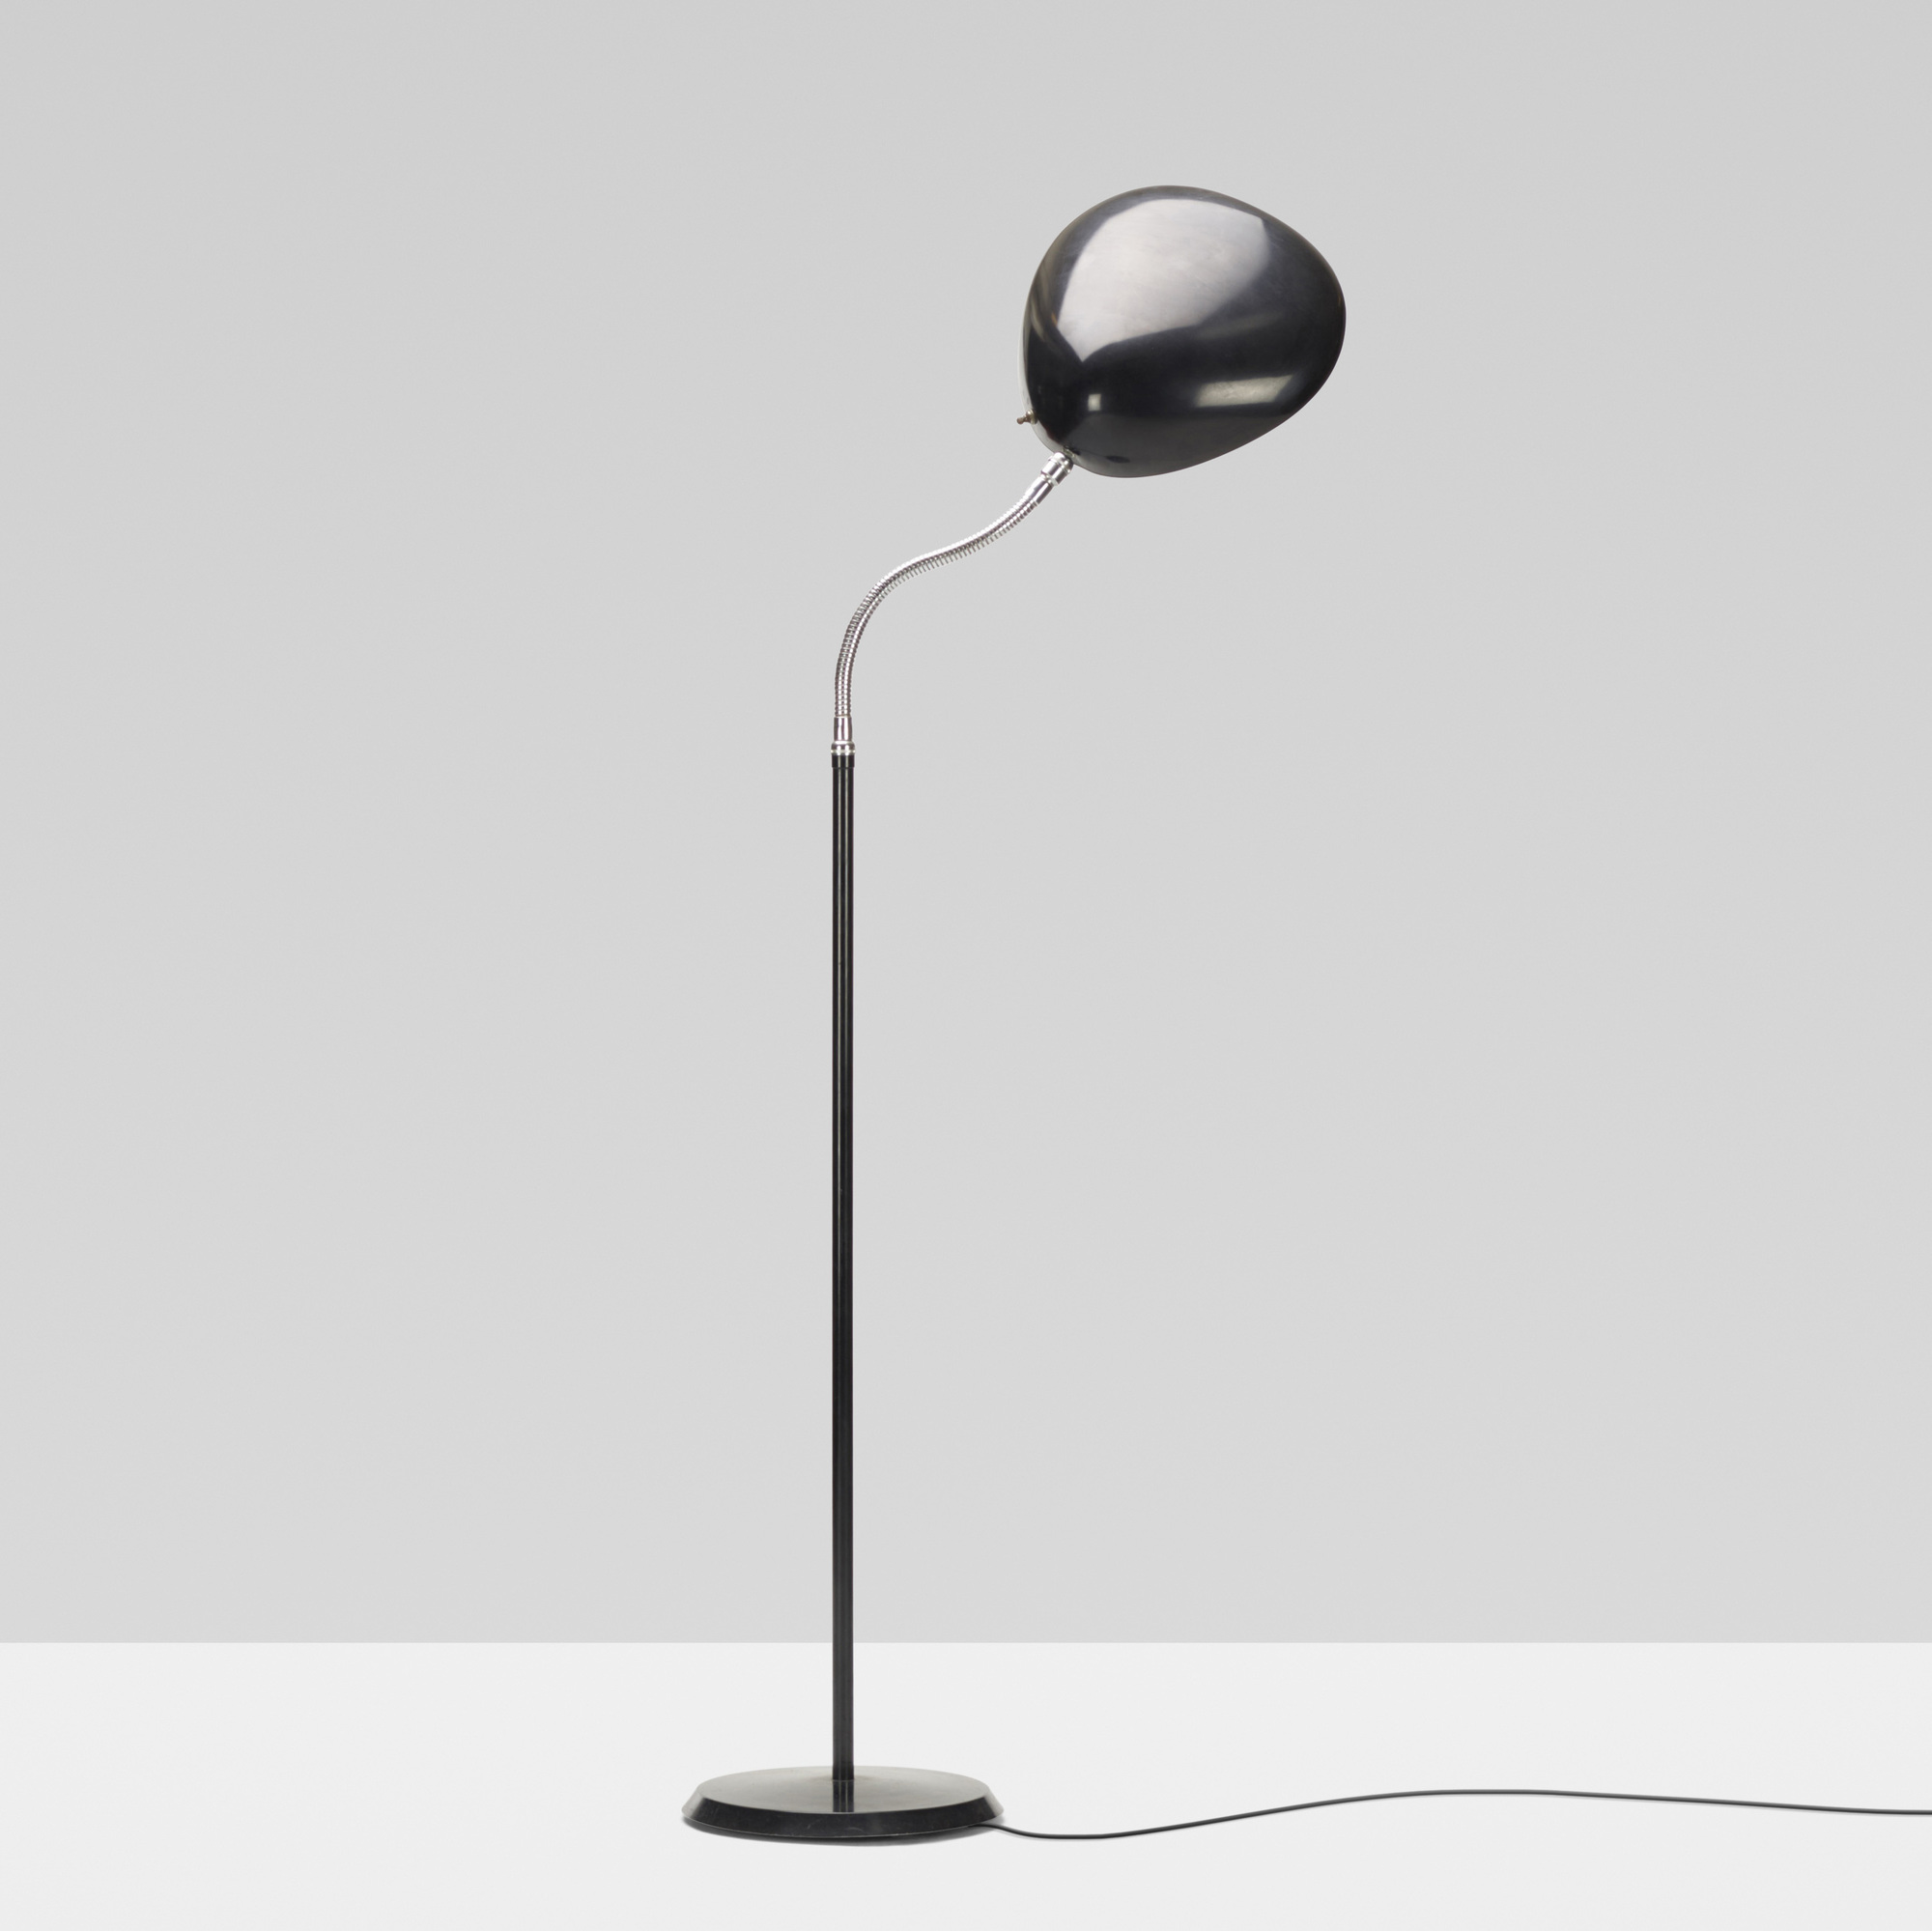 355: Greta Magnusson Grossman / Cobra floor lamp (2 of 2)